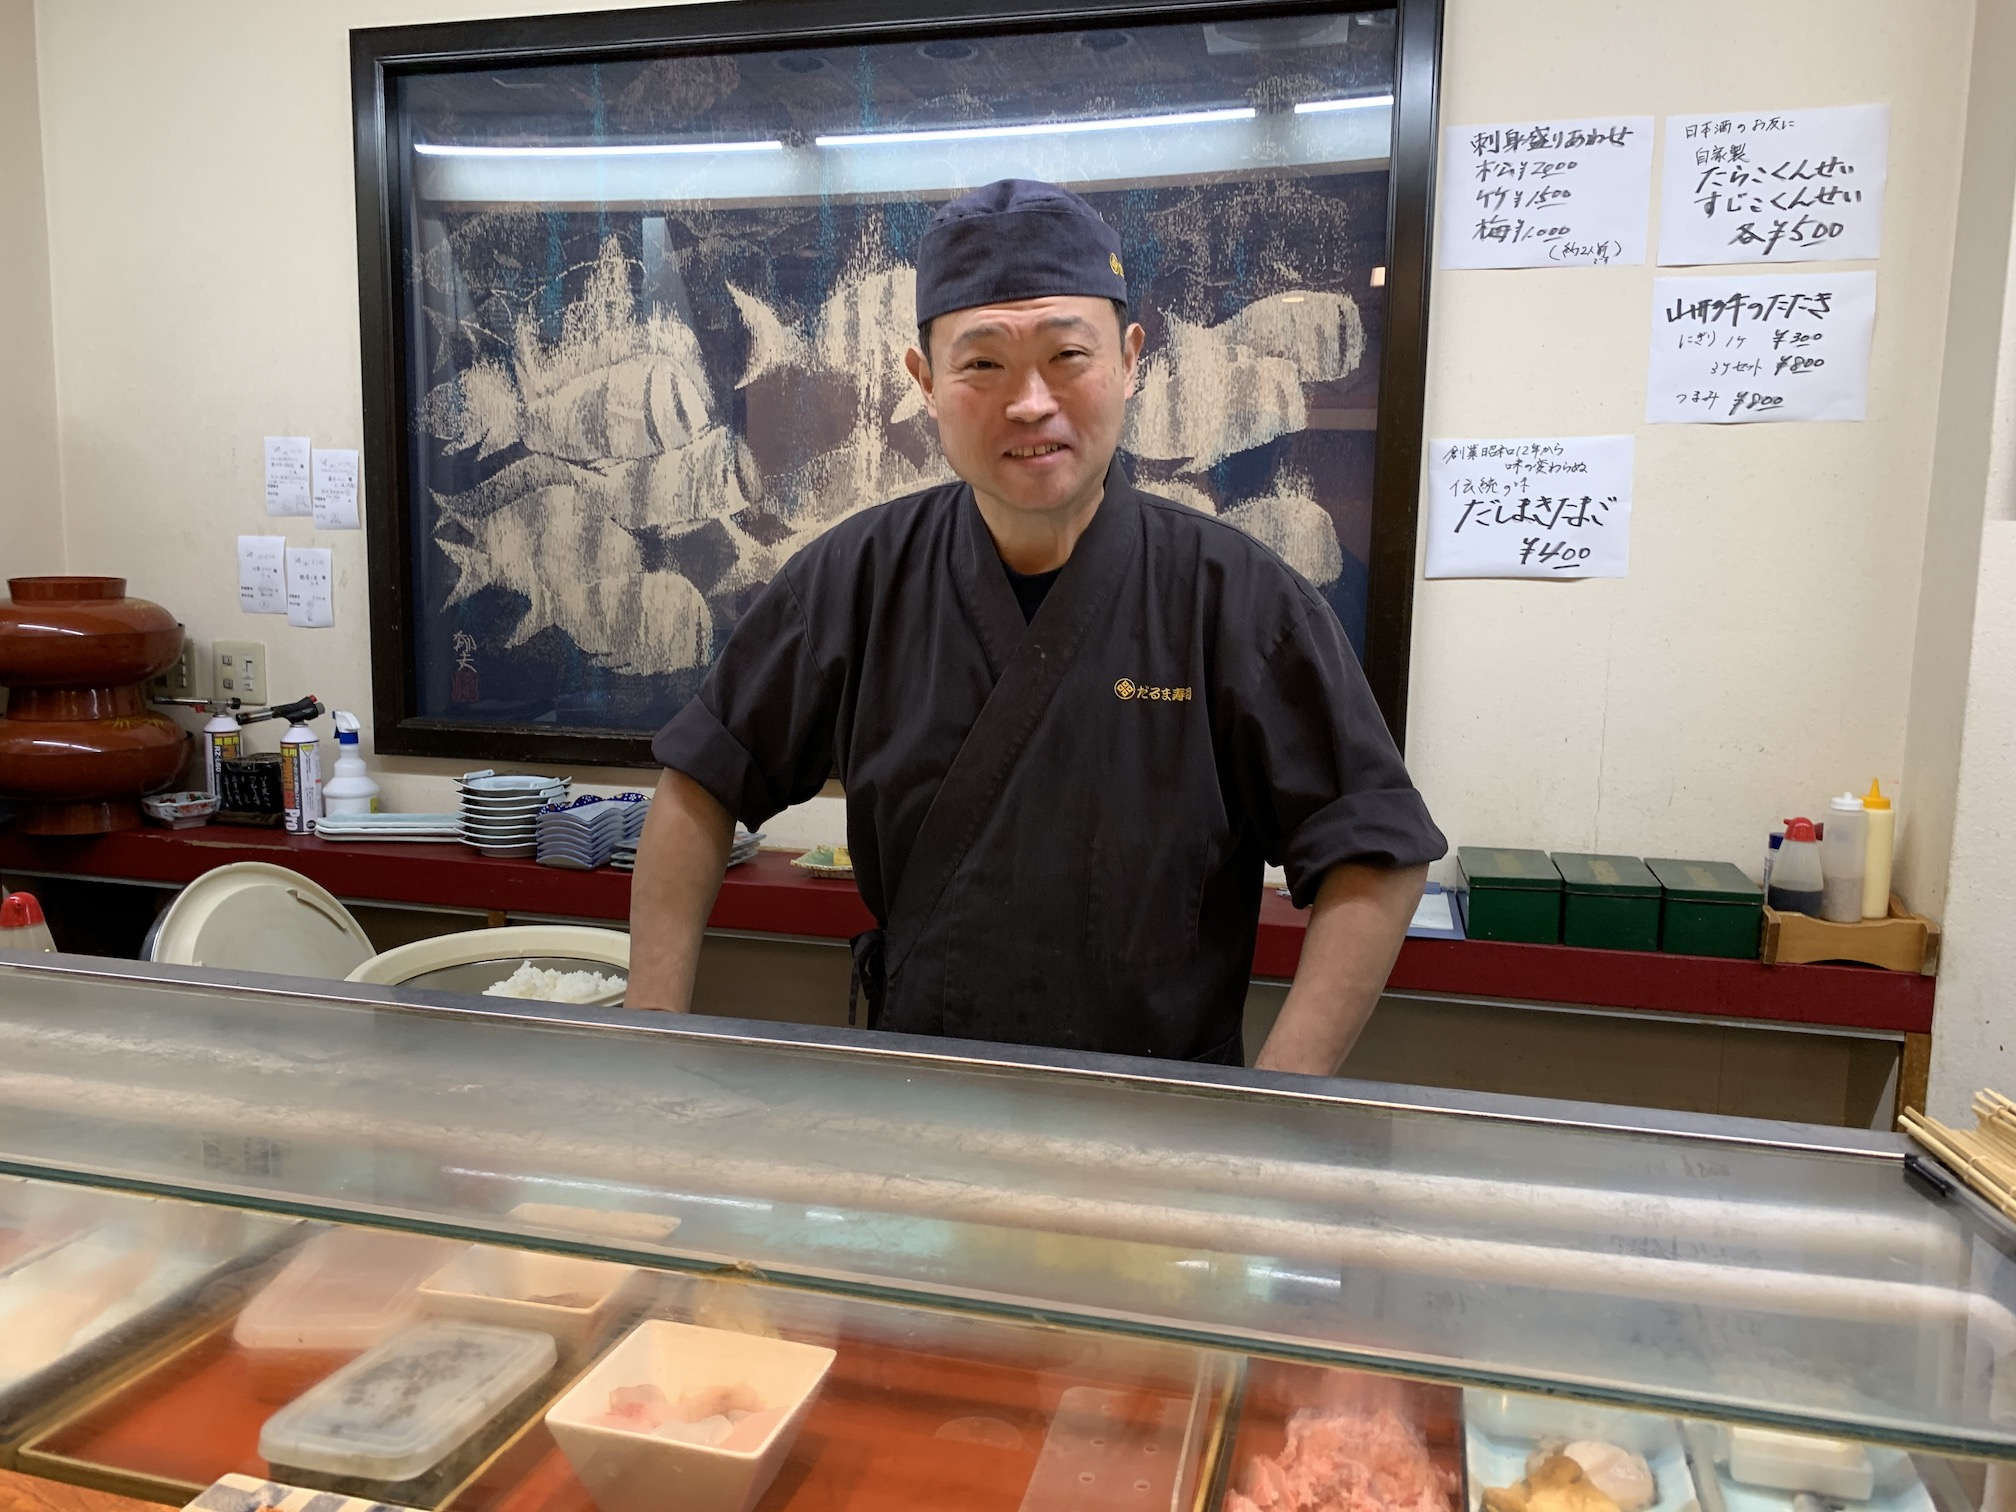 Atsushi Suzuki, a third-generation master sushi chef, at Daruma Sushi in Sakata, Yamagata. Daruma is one of the top restaurants in Tohoku.